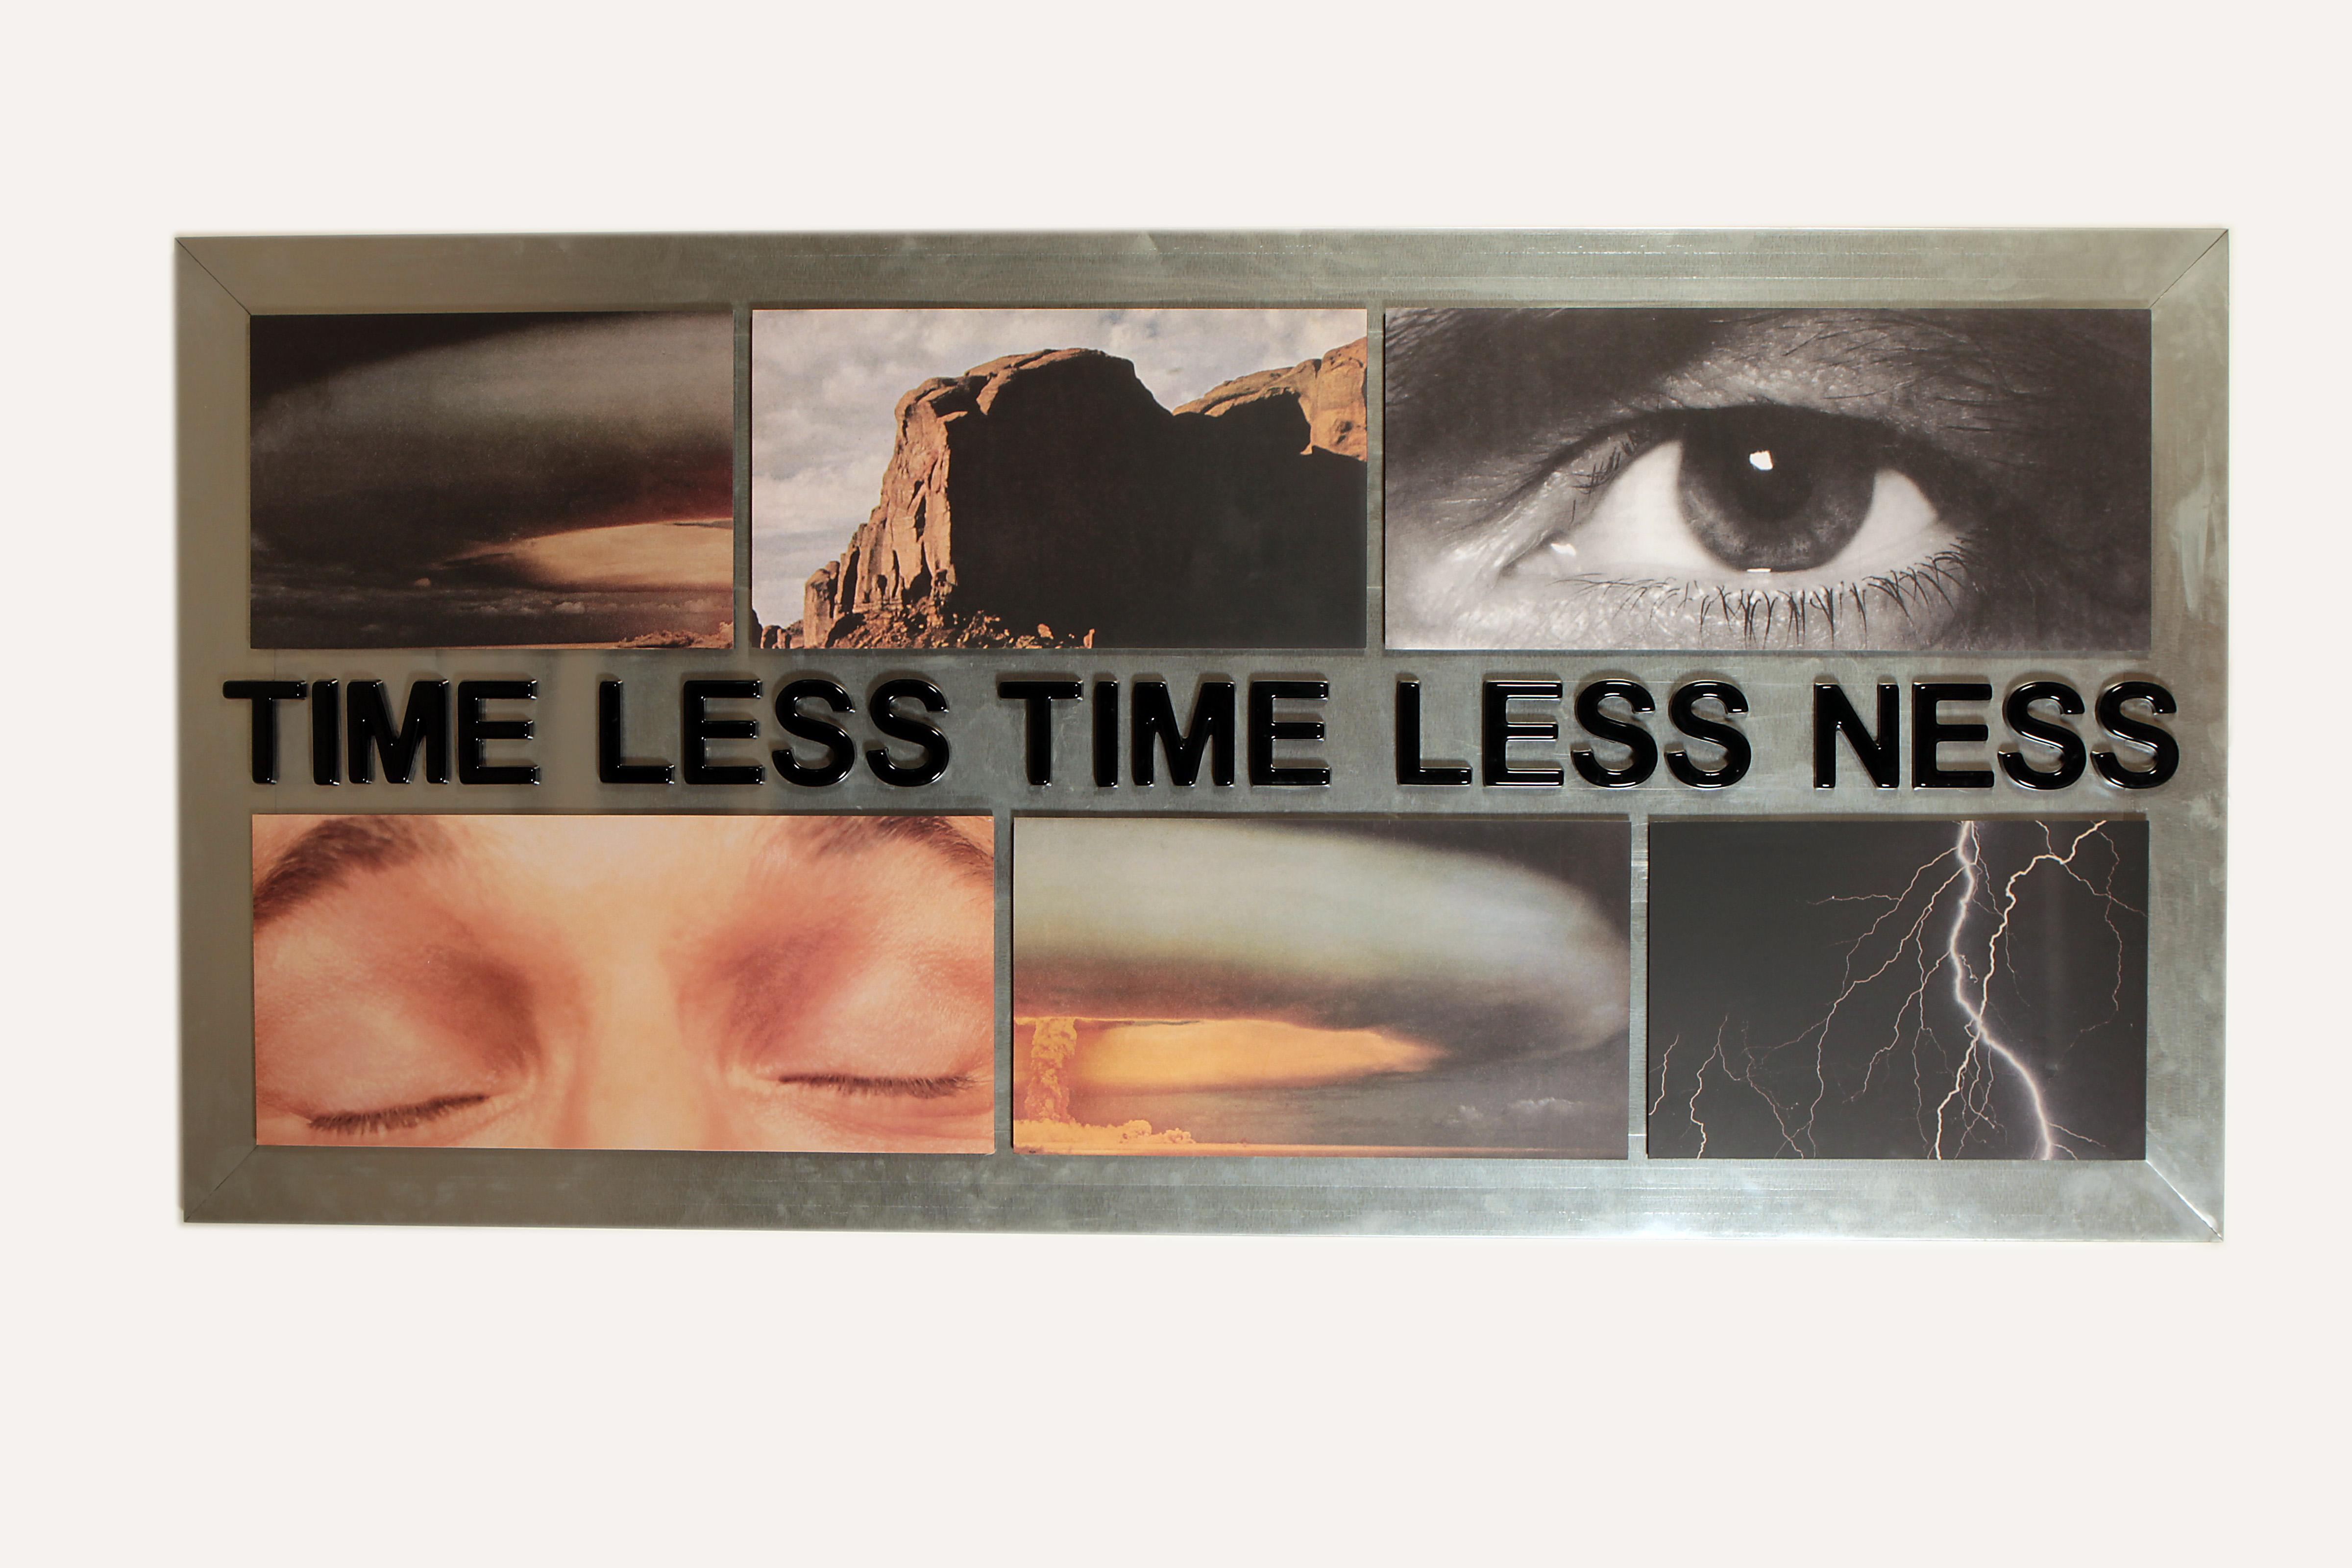 TIME LESS TIME LESS NESS